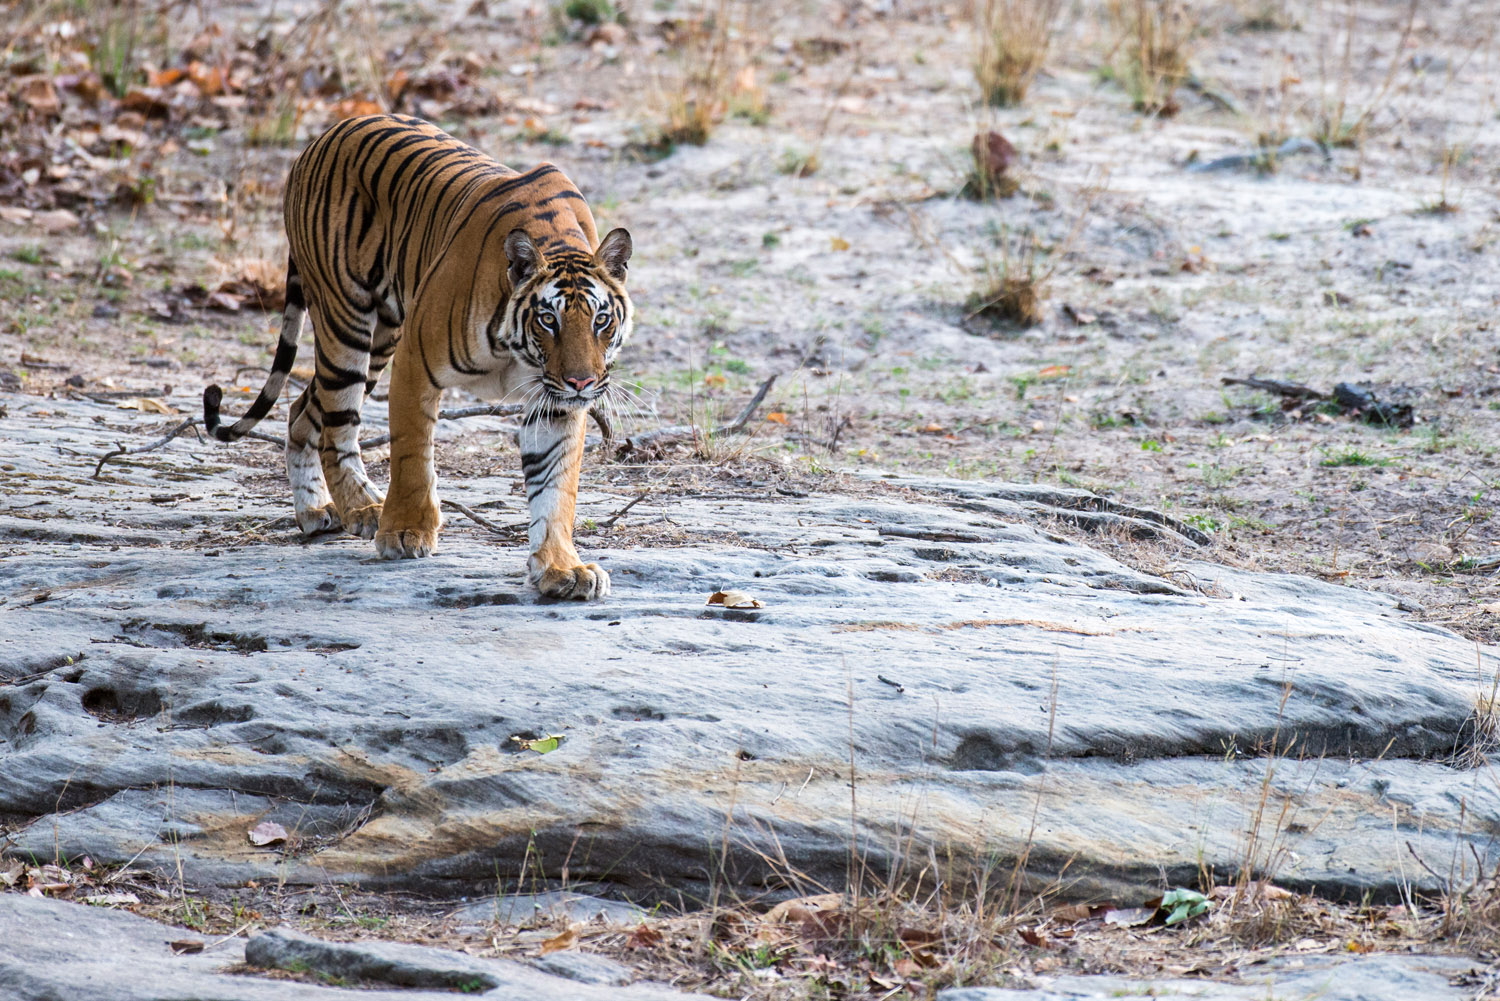 Bengal tigress walking over rocky ground, Bandhavgarh National Park, Madhya Pradesh, India